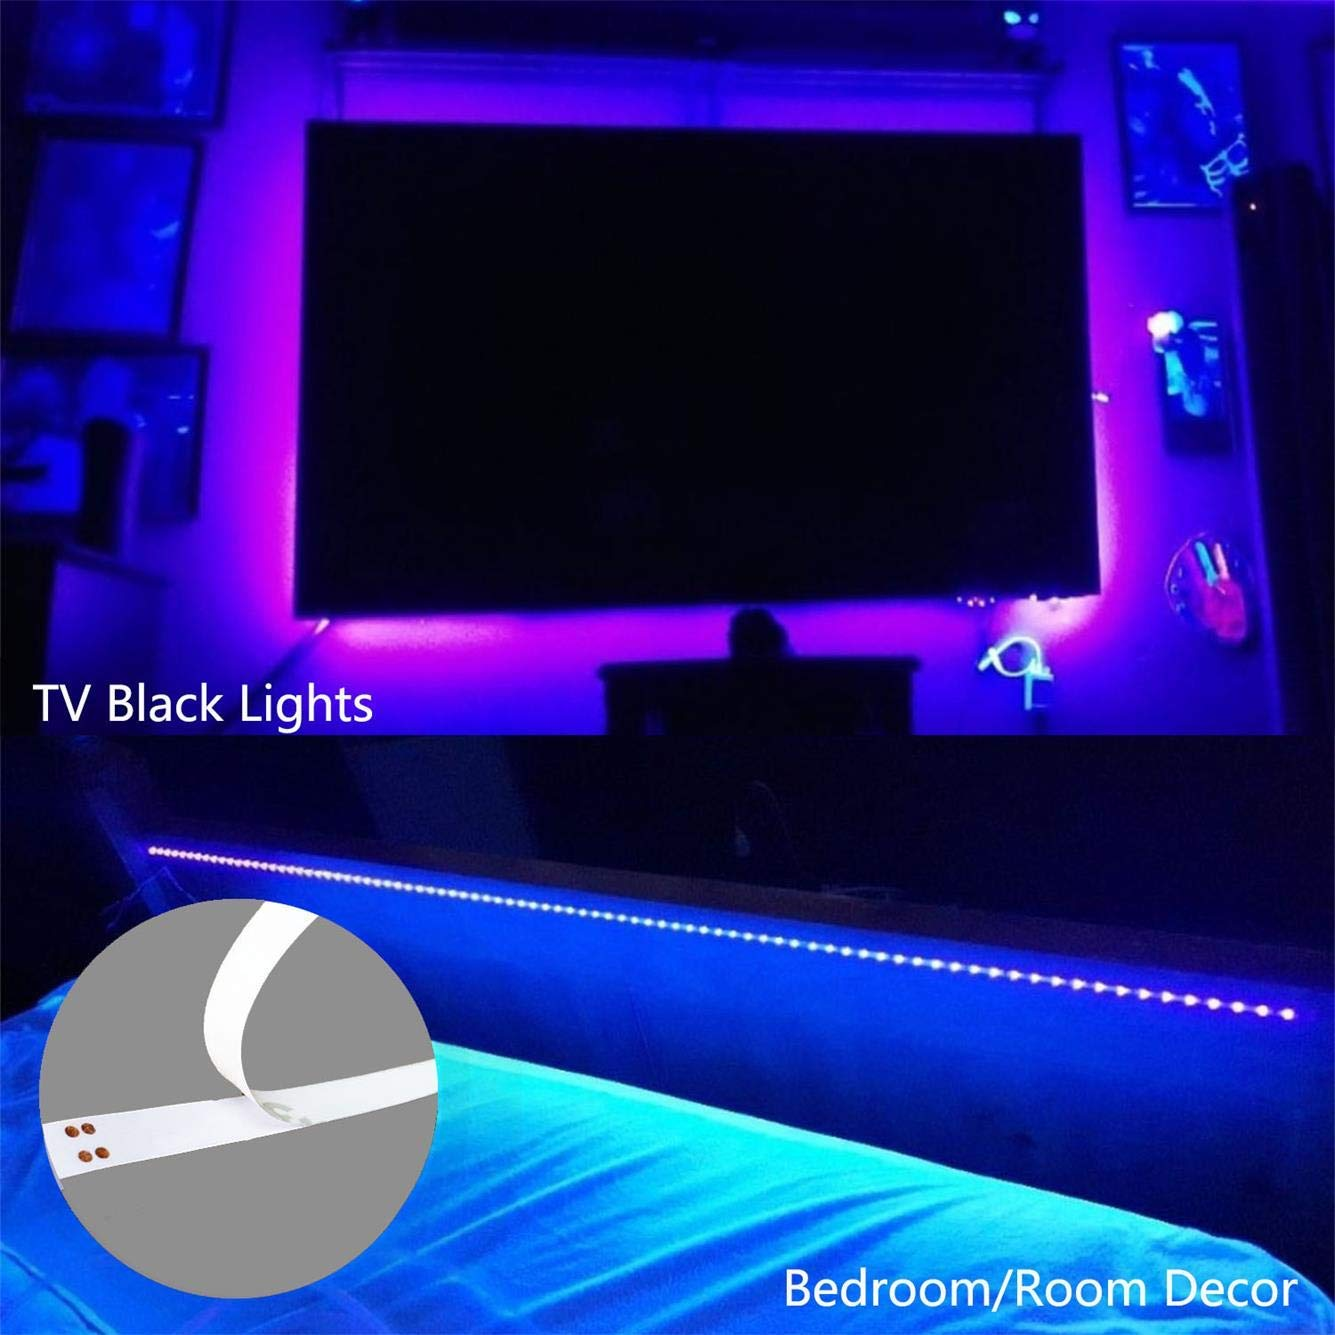 Tremendous Amars Usb Operated Uv Black Lights Led Strip 2M 6 6Ft 5050 Smd 395Nm 405Nm Blacklight For Sterilization Fluorescent Pc Poster Dj Party Room Interior Design Ideas Clesiryabchikinfo